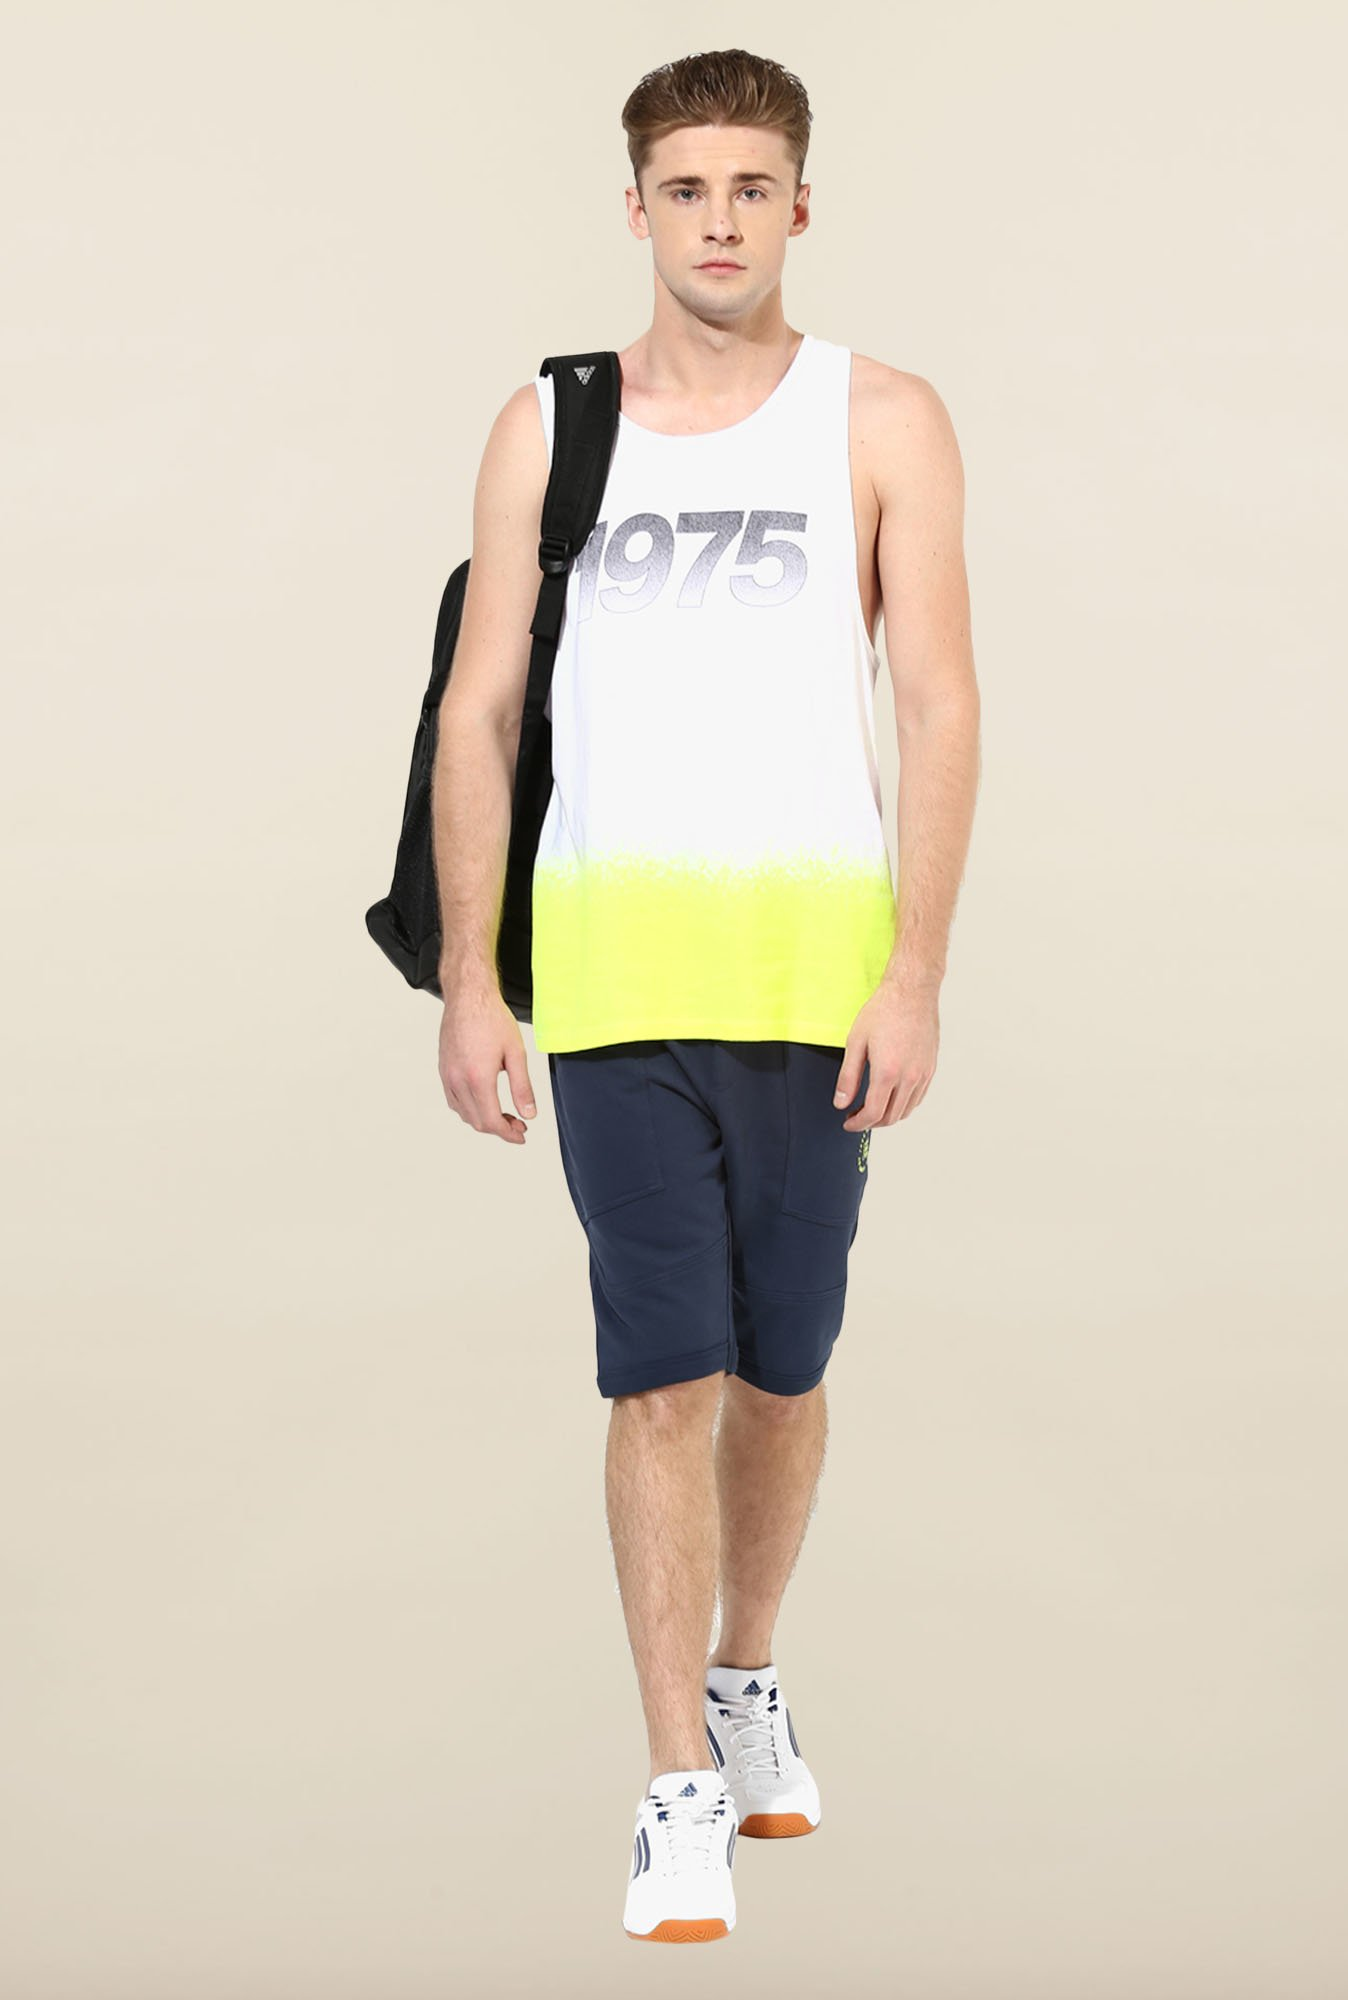 Jack & Jones White & Yellow Printed Vest